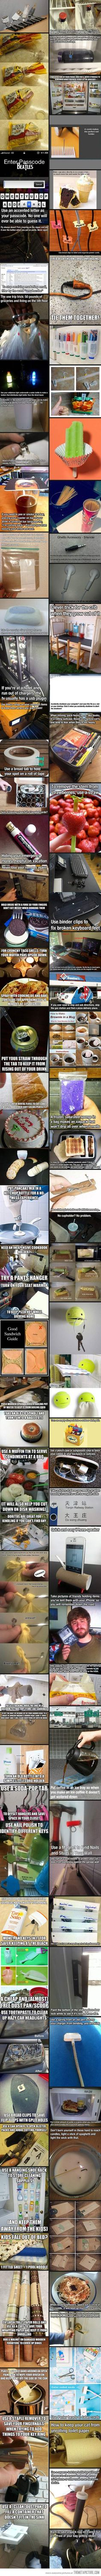 Tips, Tricks, DIYs, and Life Hacks.